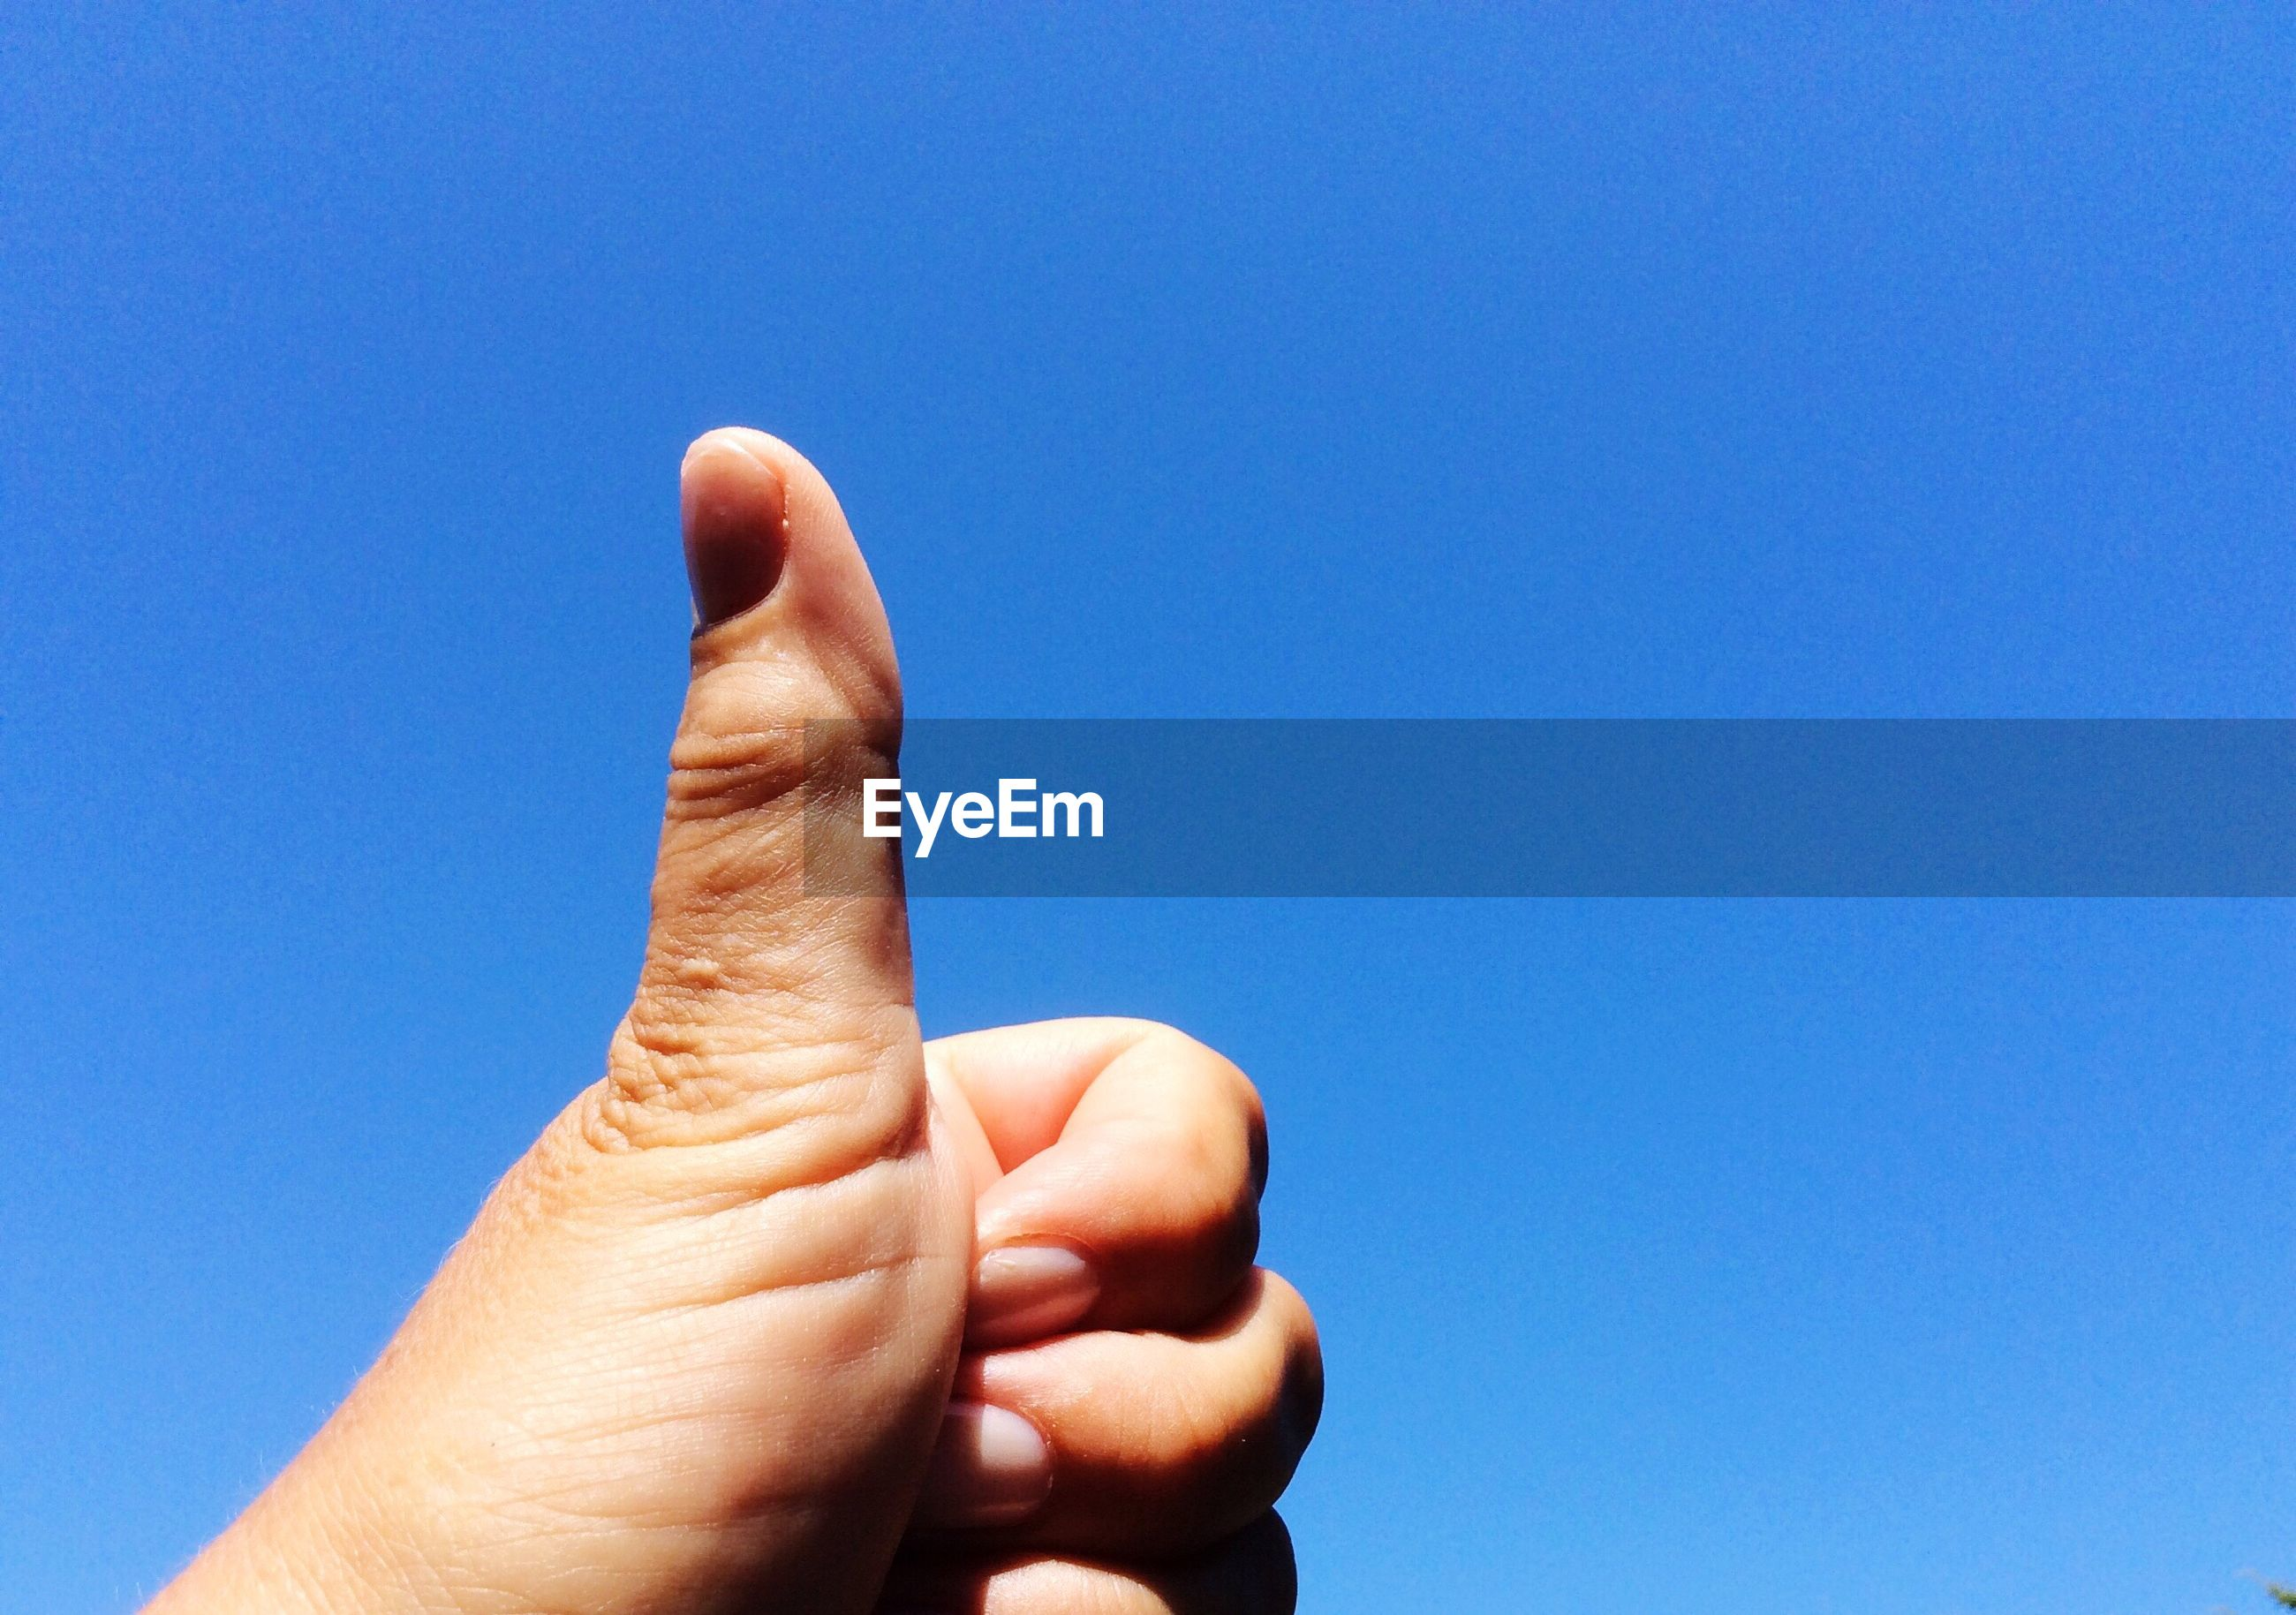 Cropped image of hand showing thumbs up against clear blue sky